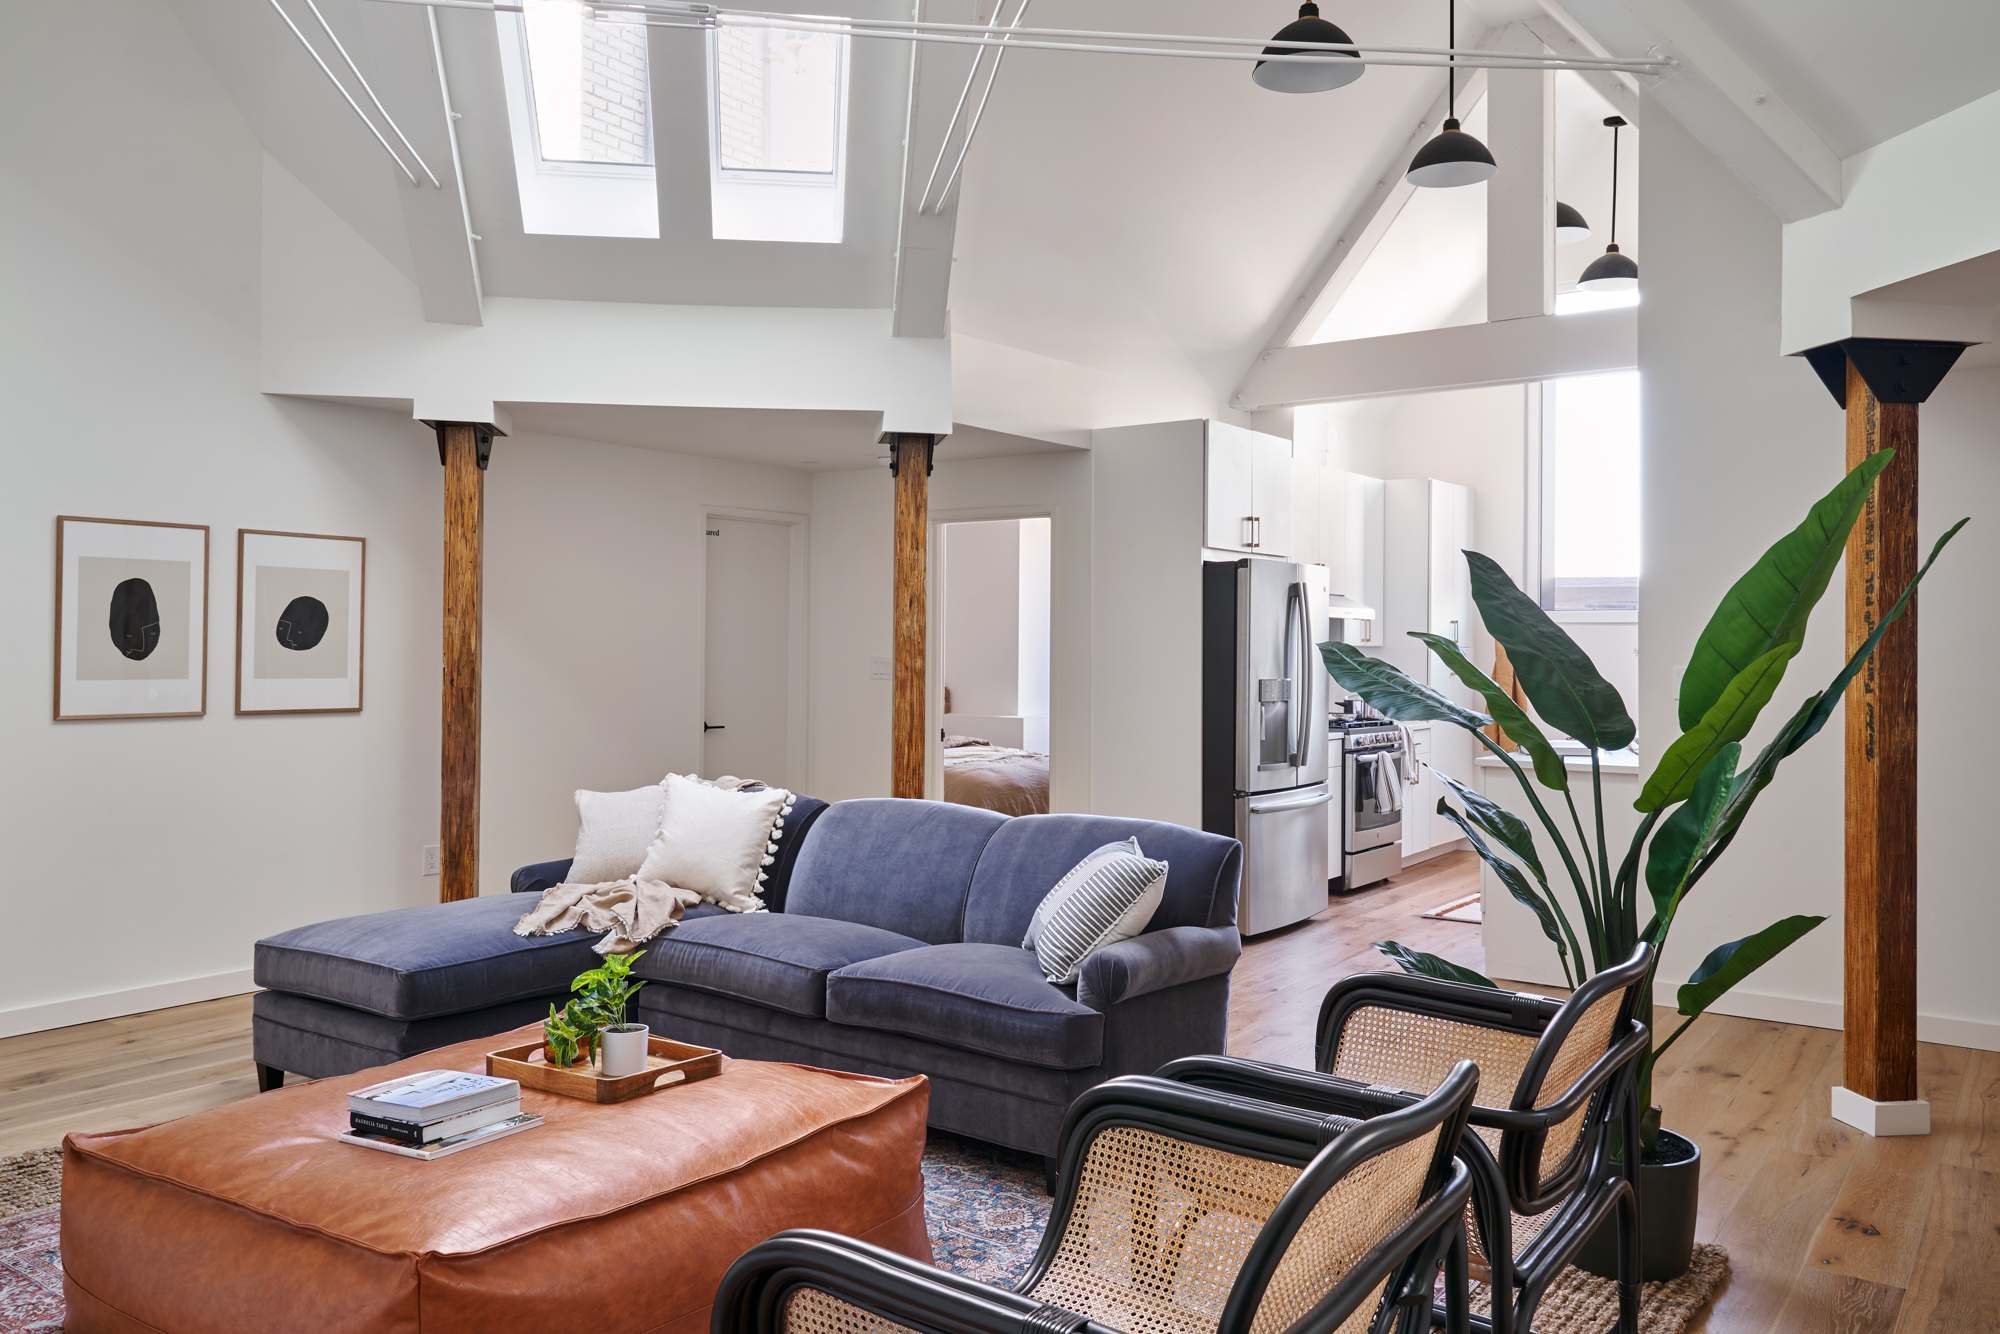 Living room with cathedral ceilings, exposed wooden beams, and a sectional sofa with square ottoman.